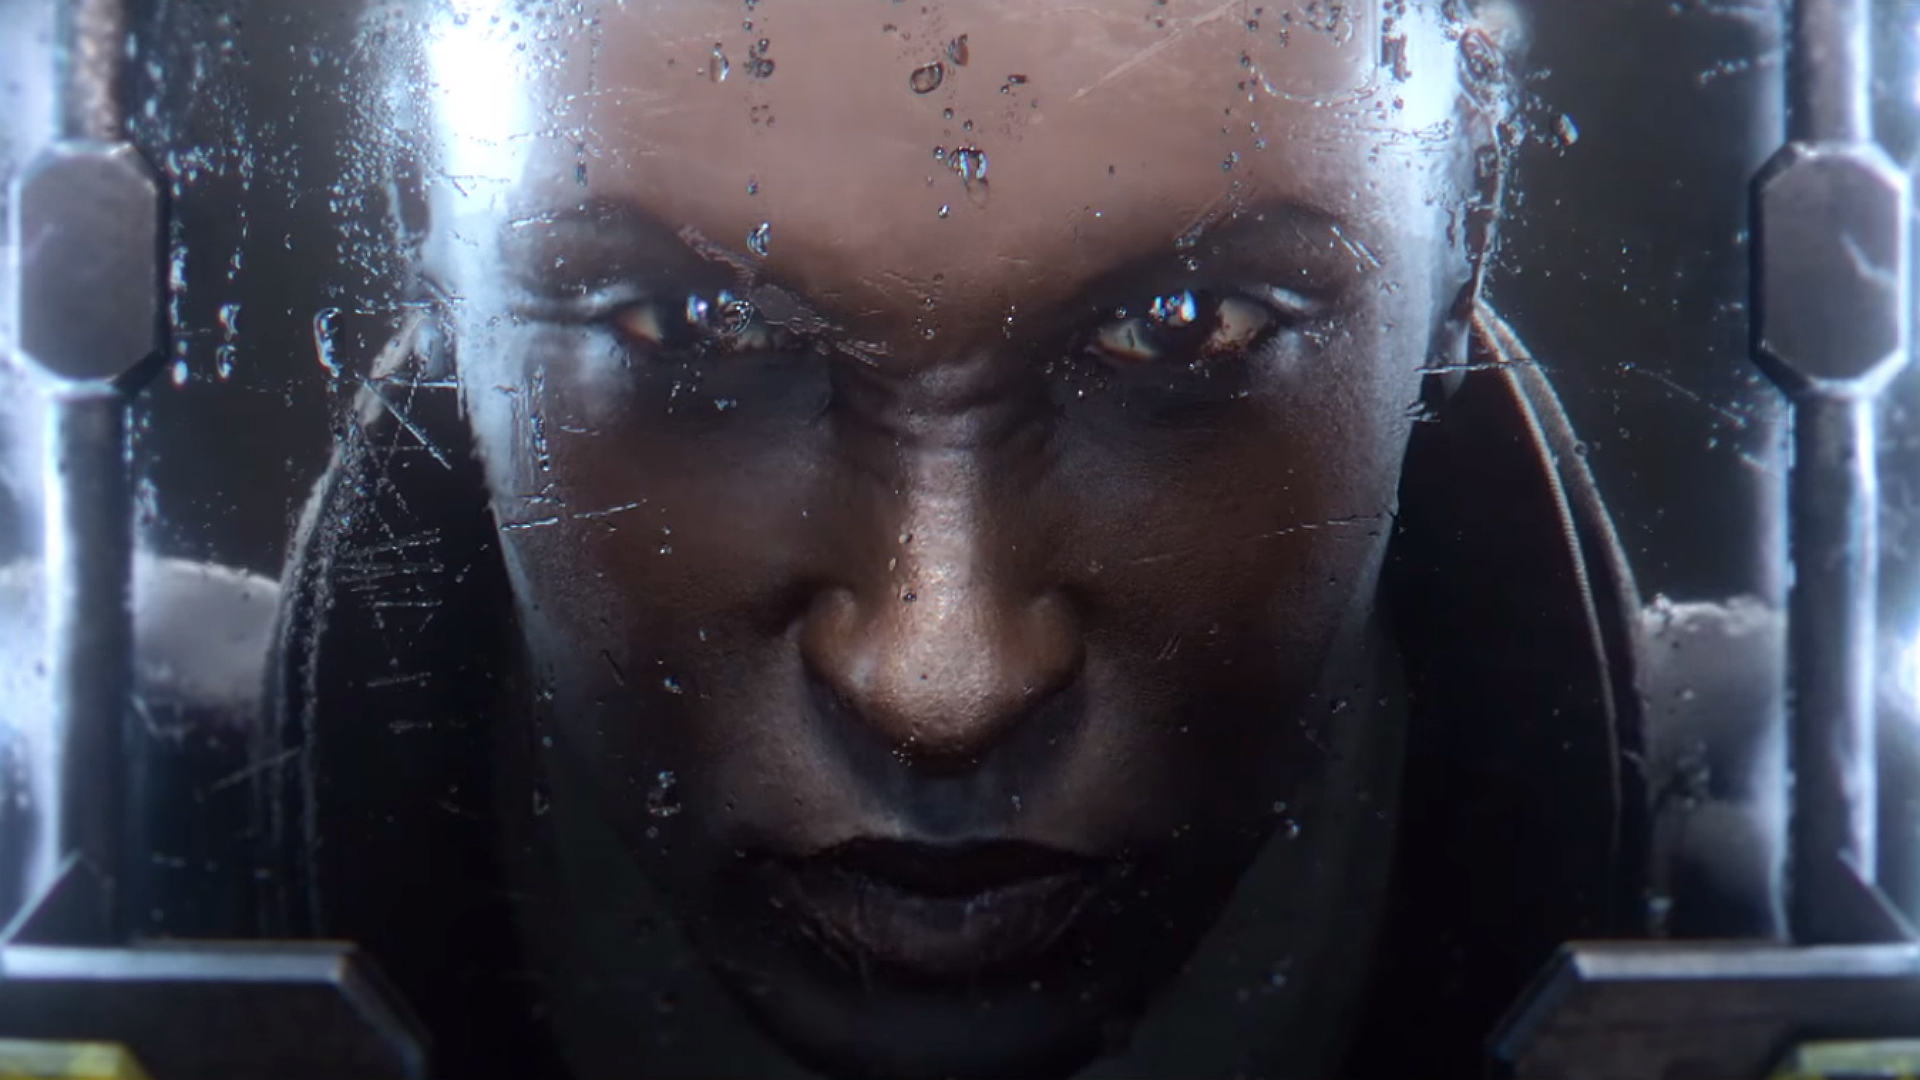 Rainbow Six Siege: Grim Sky release date – all the latest details on